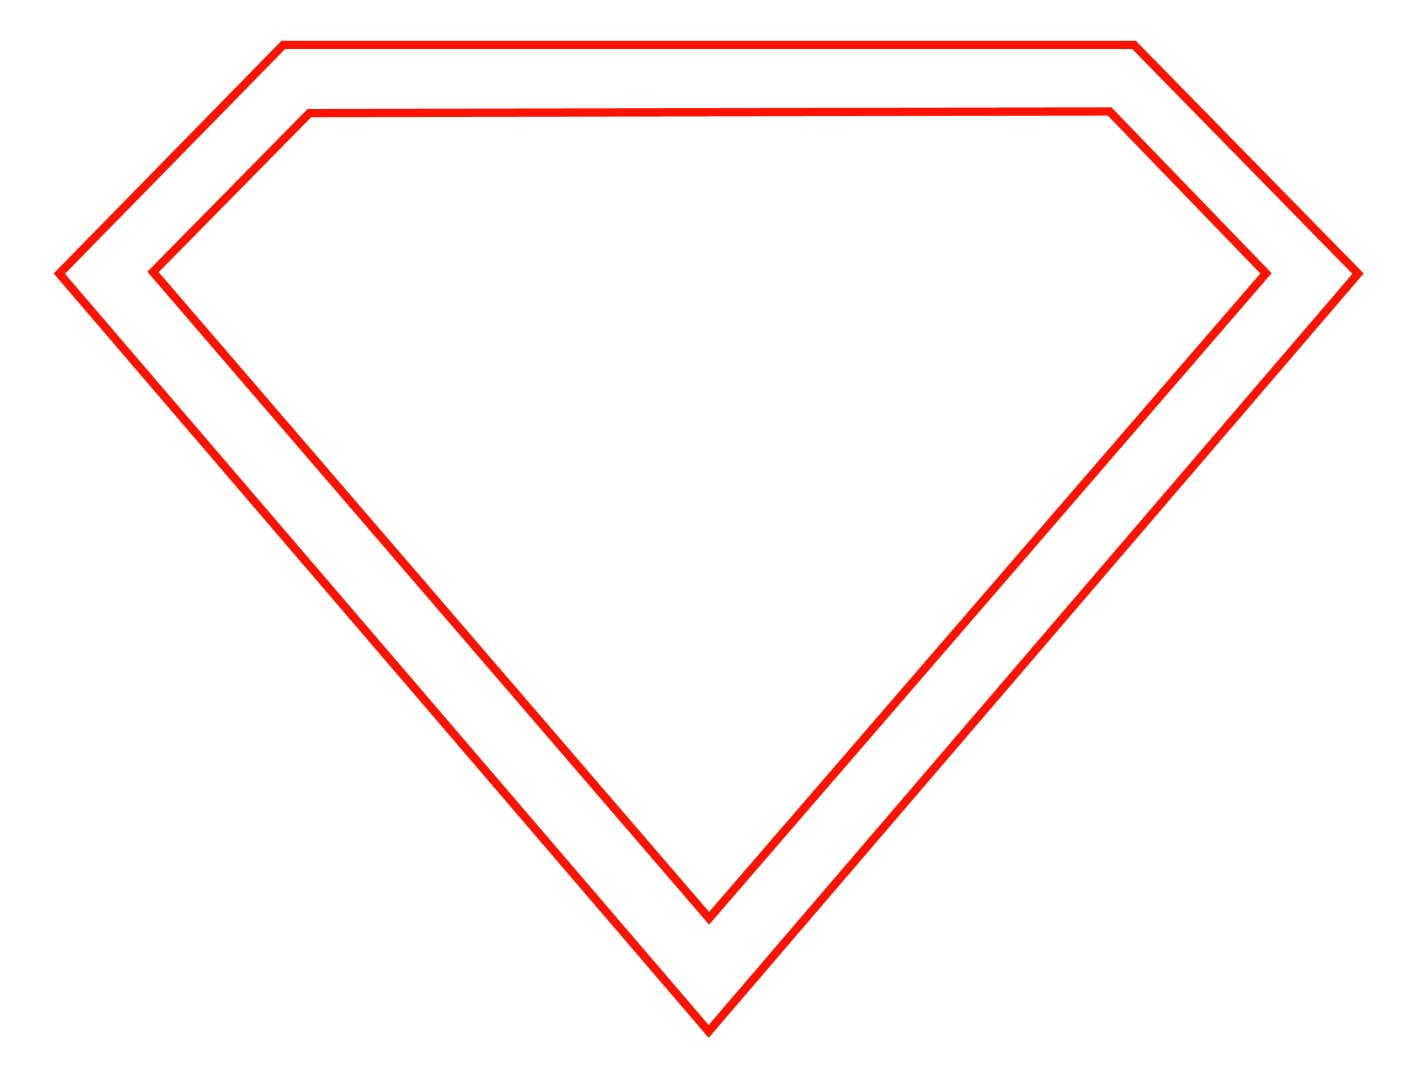 Superman without head clipart clip art freeuse library Superman without head clipart - ClipartFest clip art freeuse library